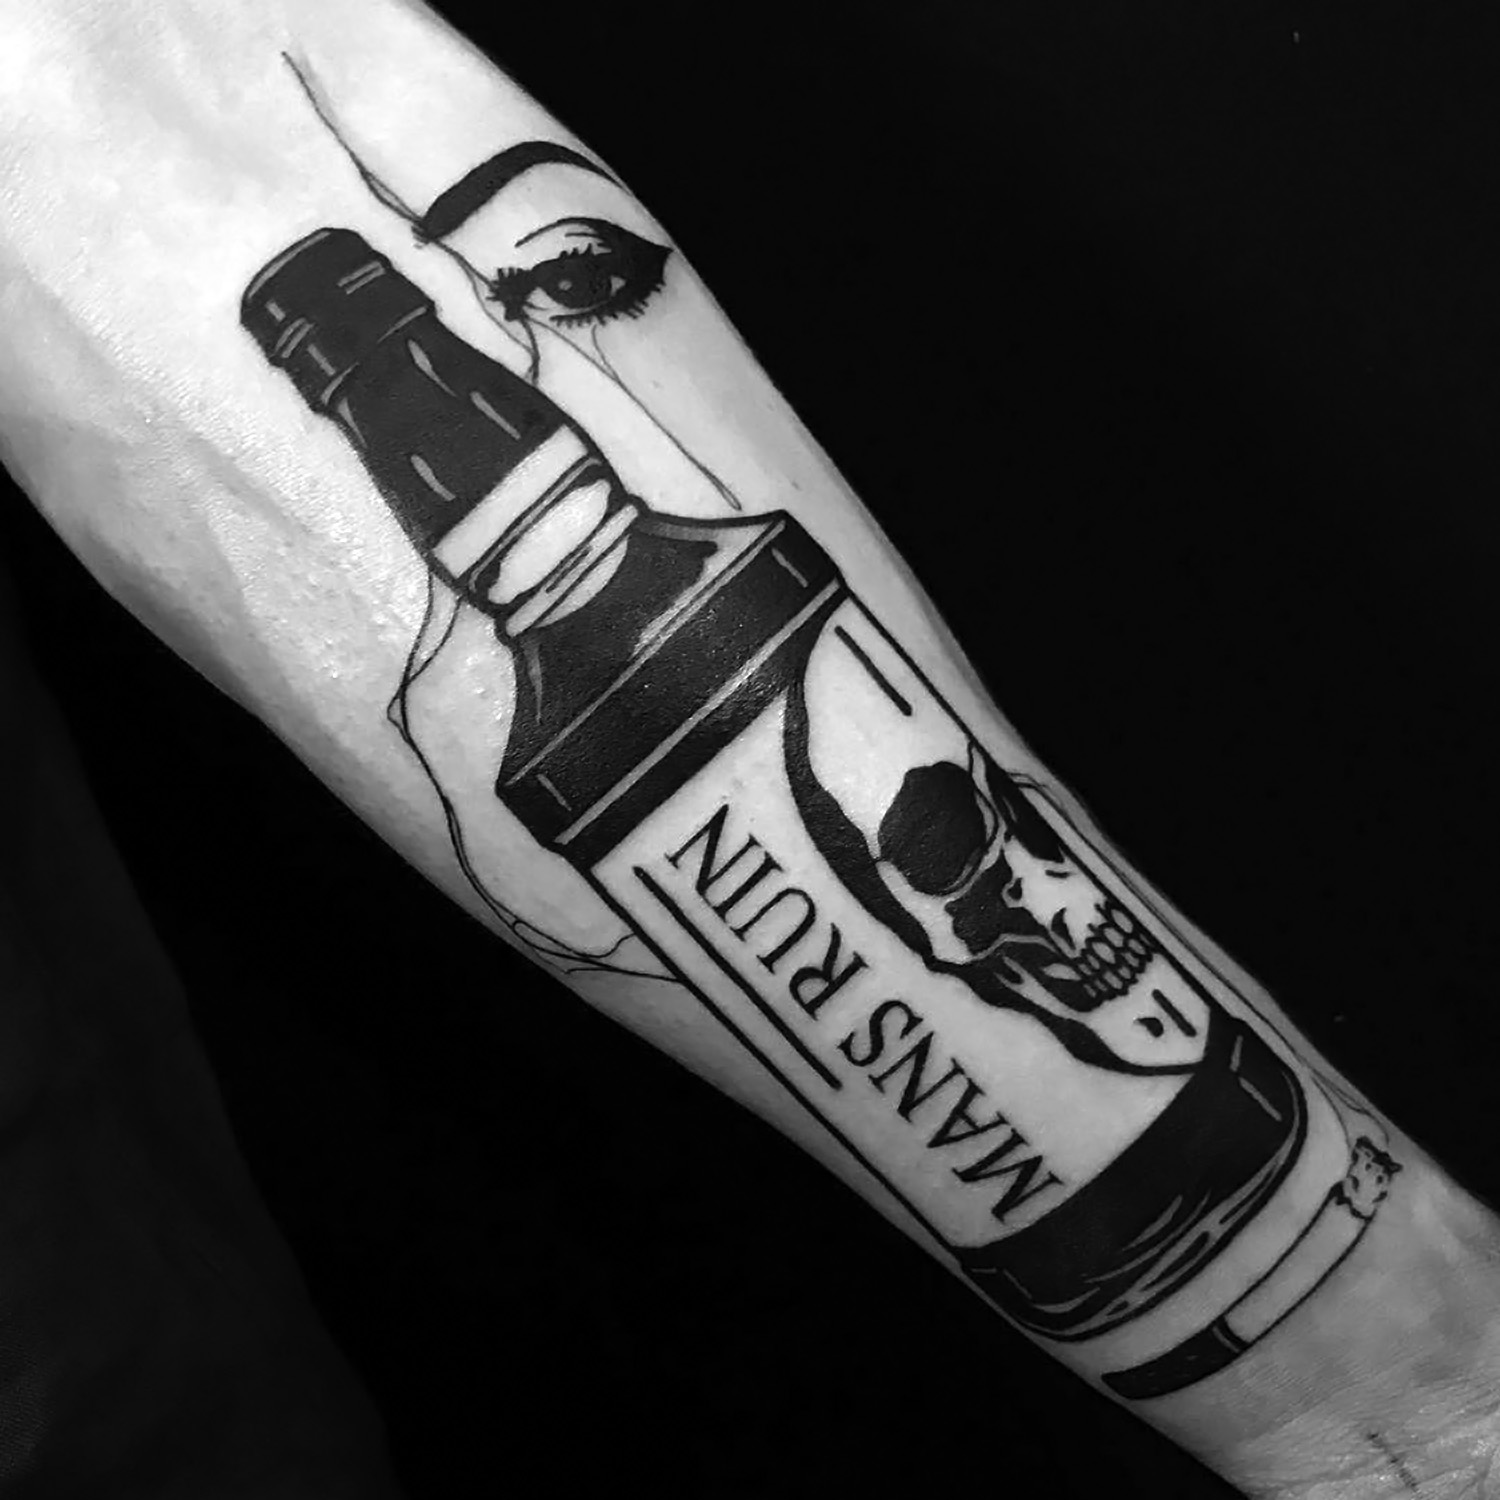 Louis Loveless tattoo smokey eyes behind bottle